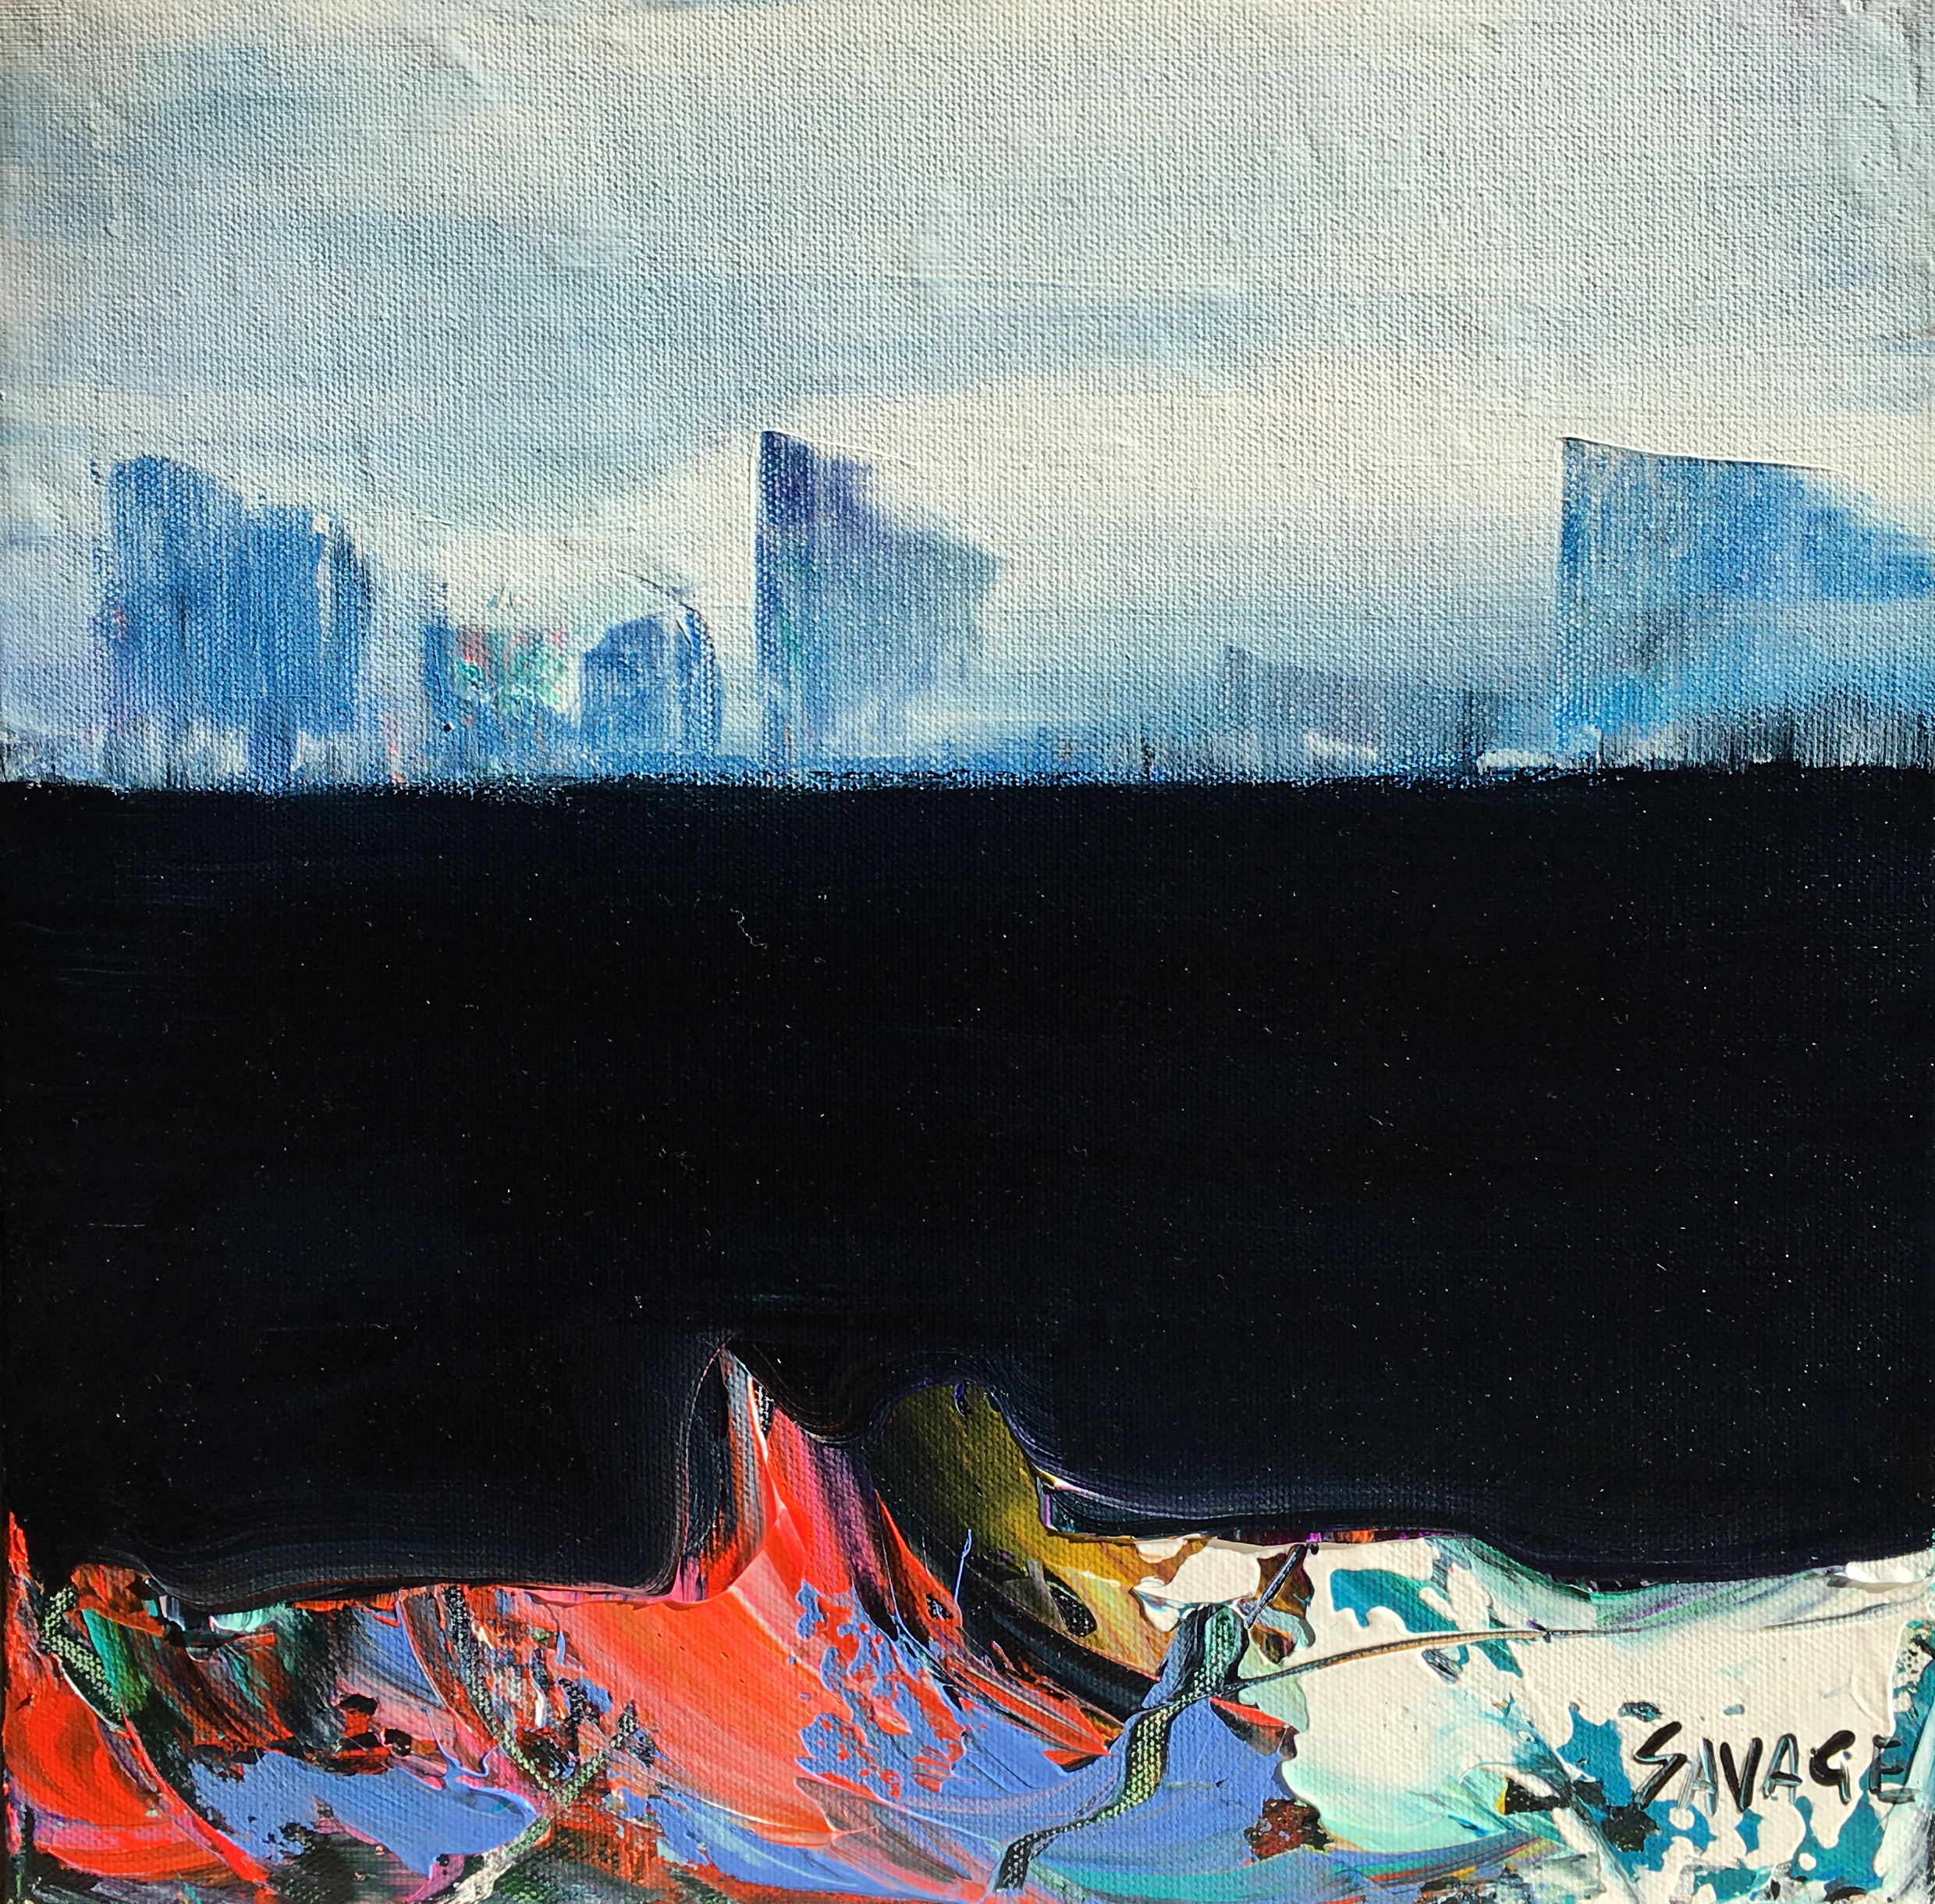 Savage - River city (Montréal) - 12x12 - 288$